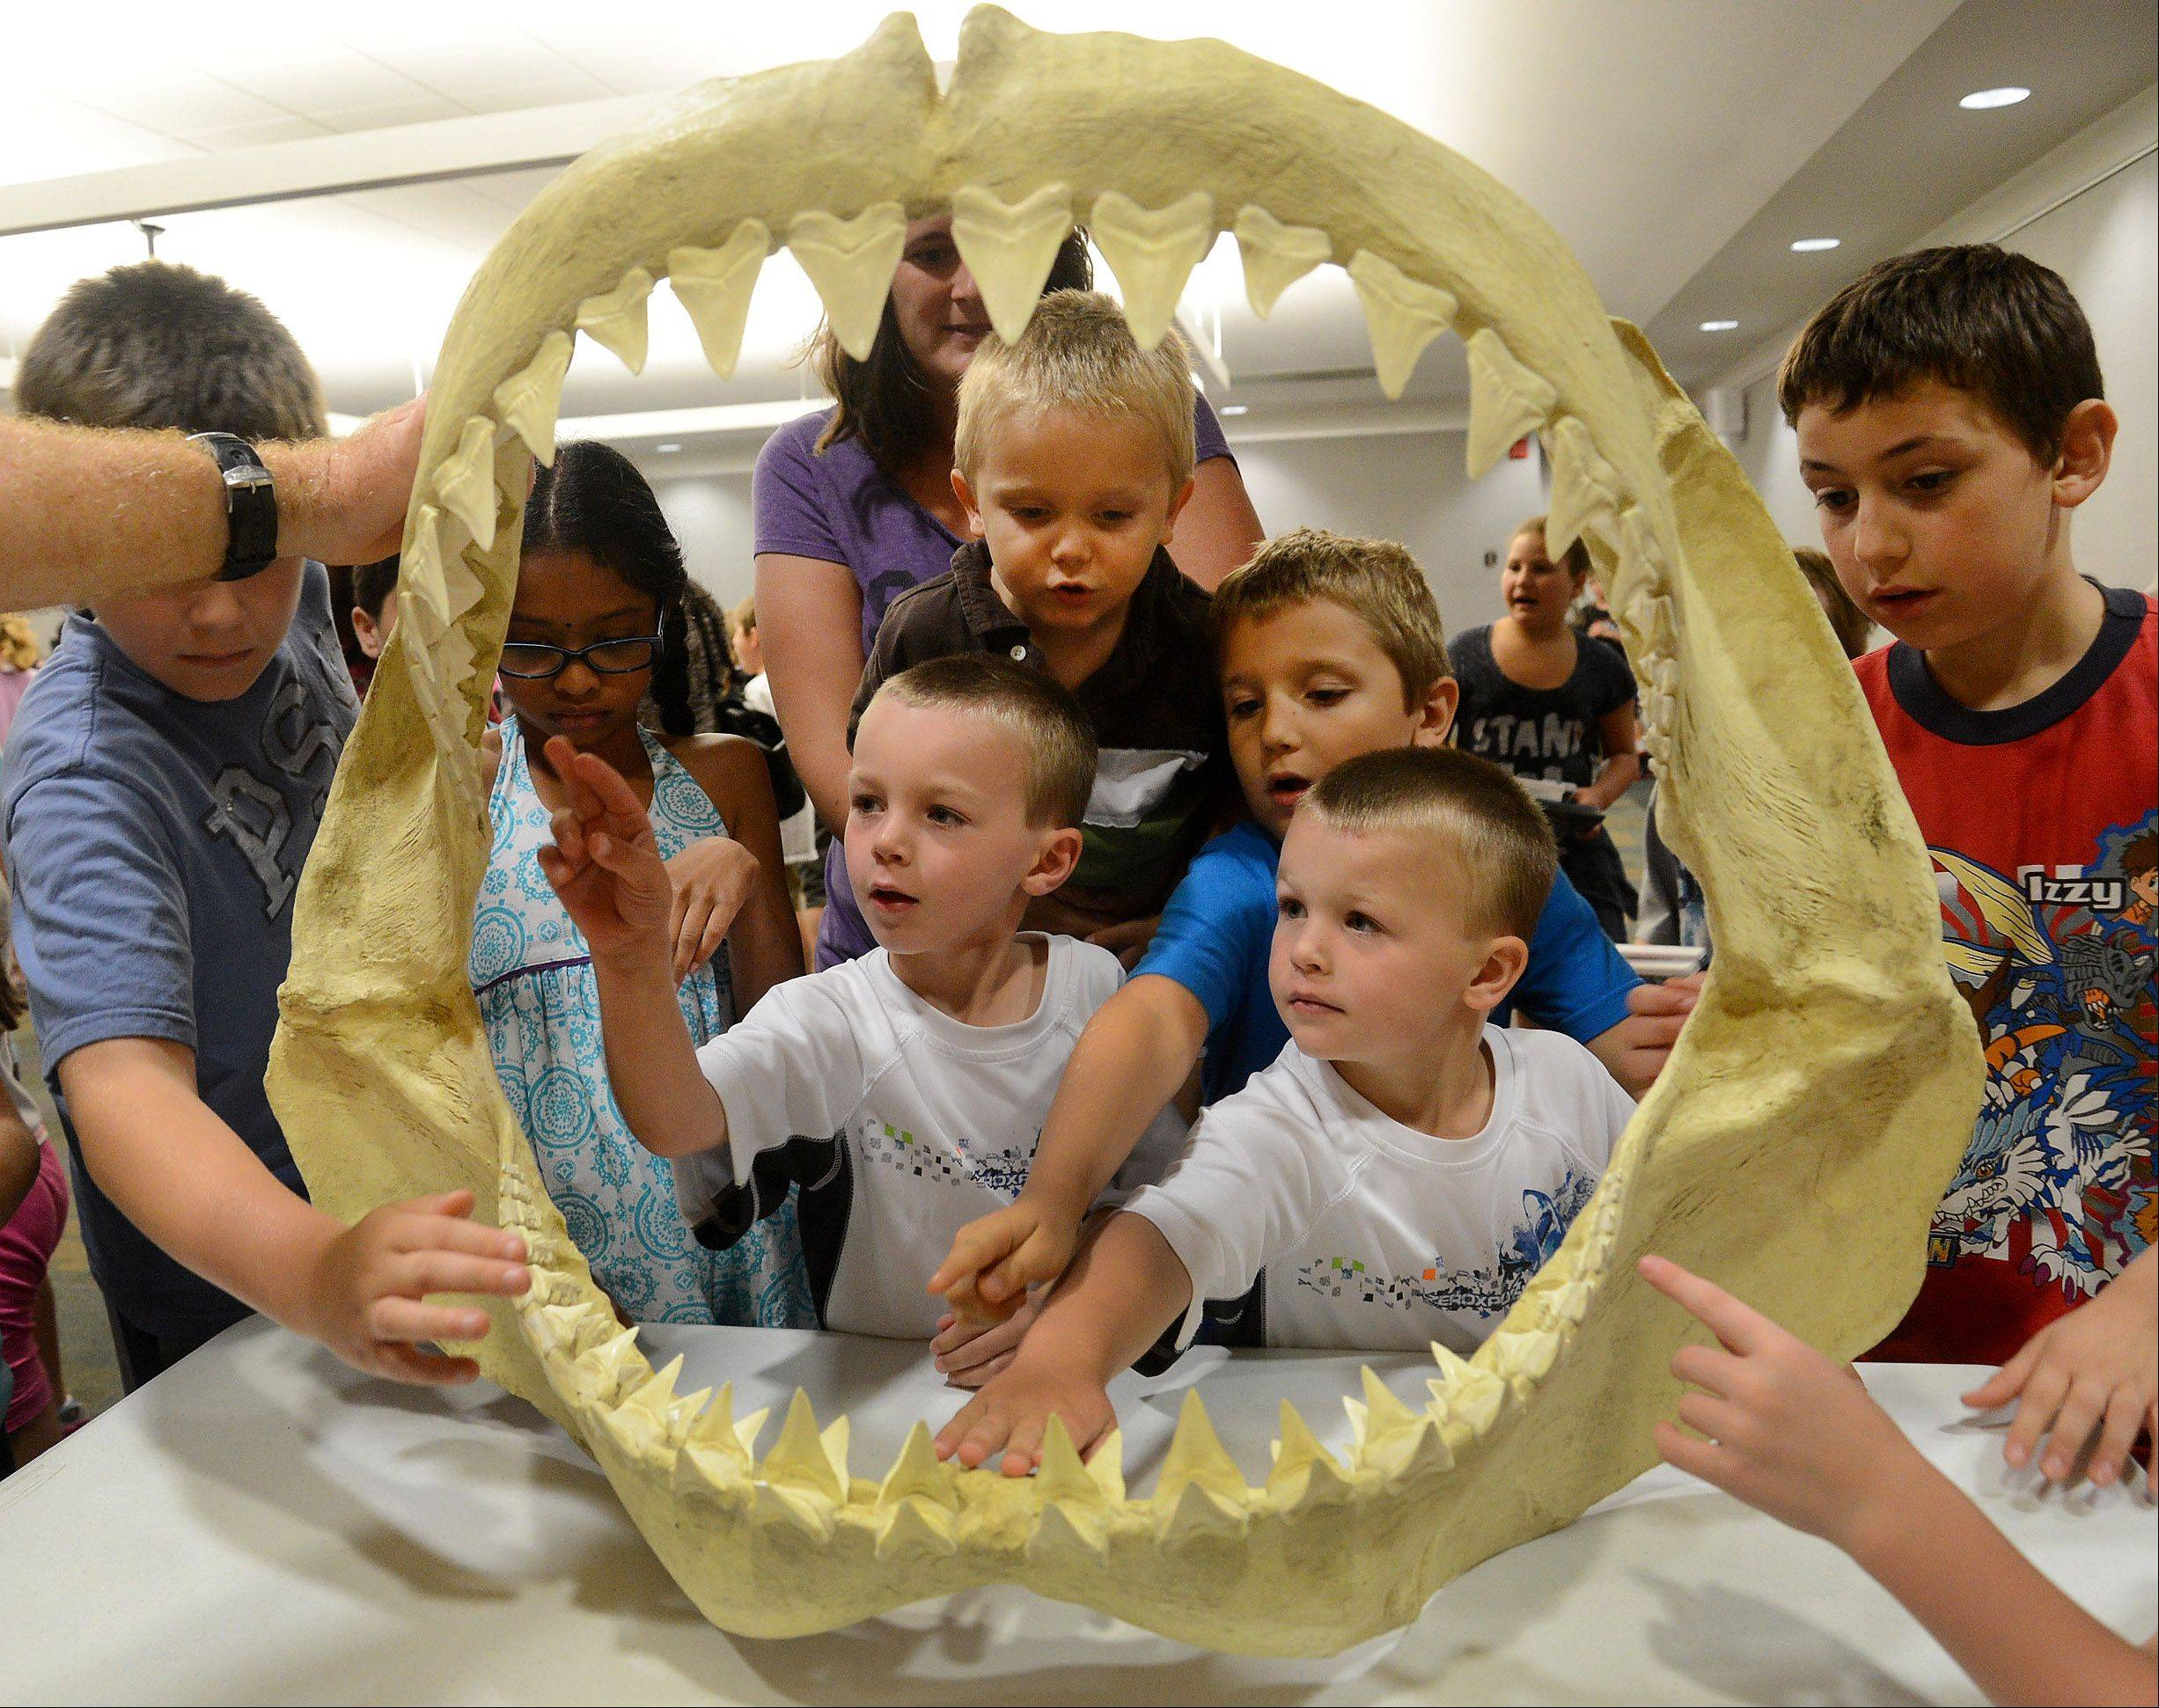 Evan, left, and Liam Fisher of Round Lake get a good look at the jaws of a 20 foot long Great White Shark during The Ocean Adventure, a program by Wayne and Karen Brown, marine biologists, about their Australian Great White Shark Expedition.